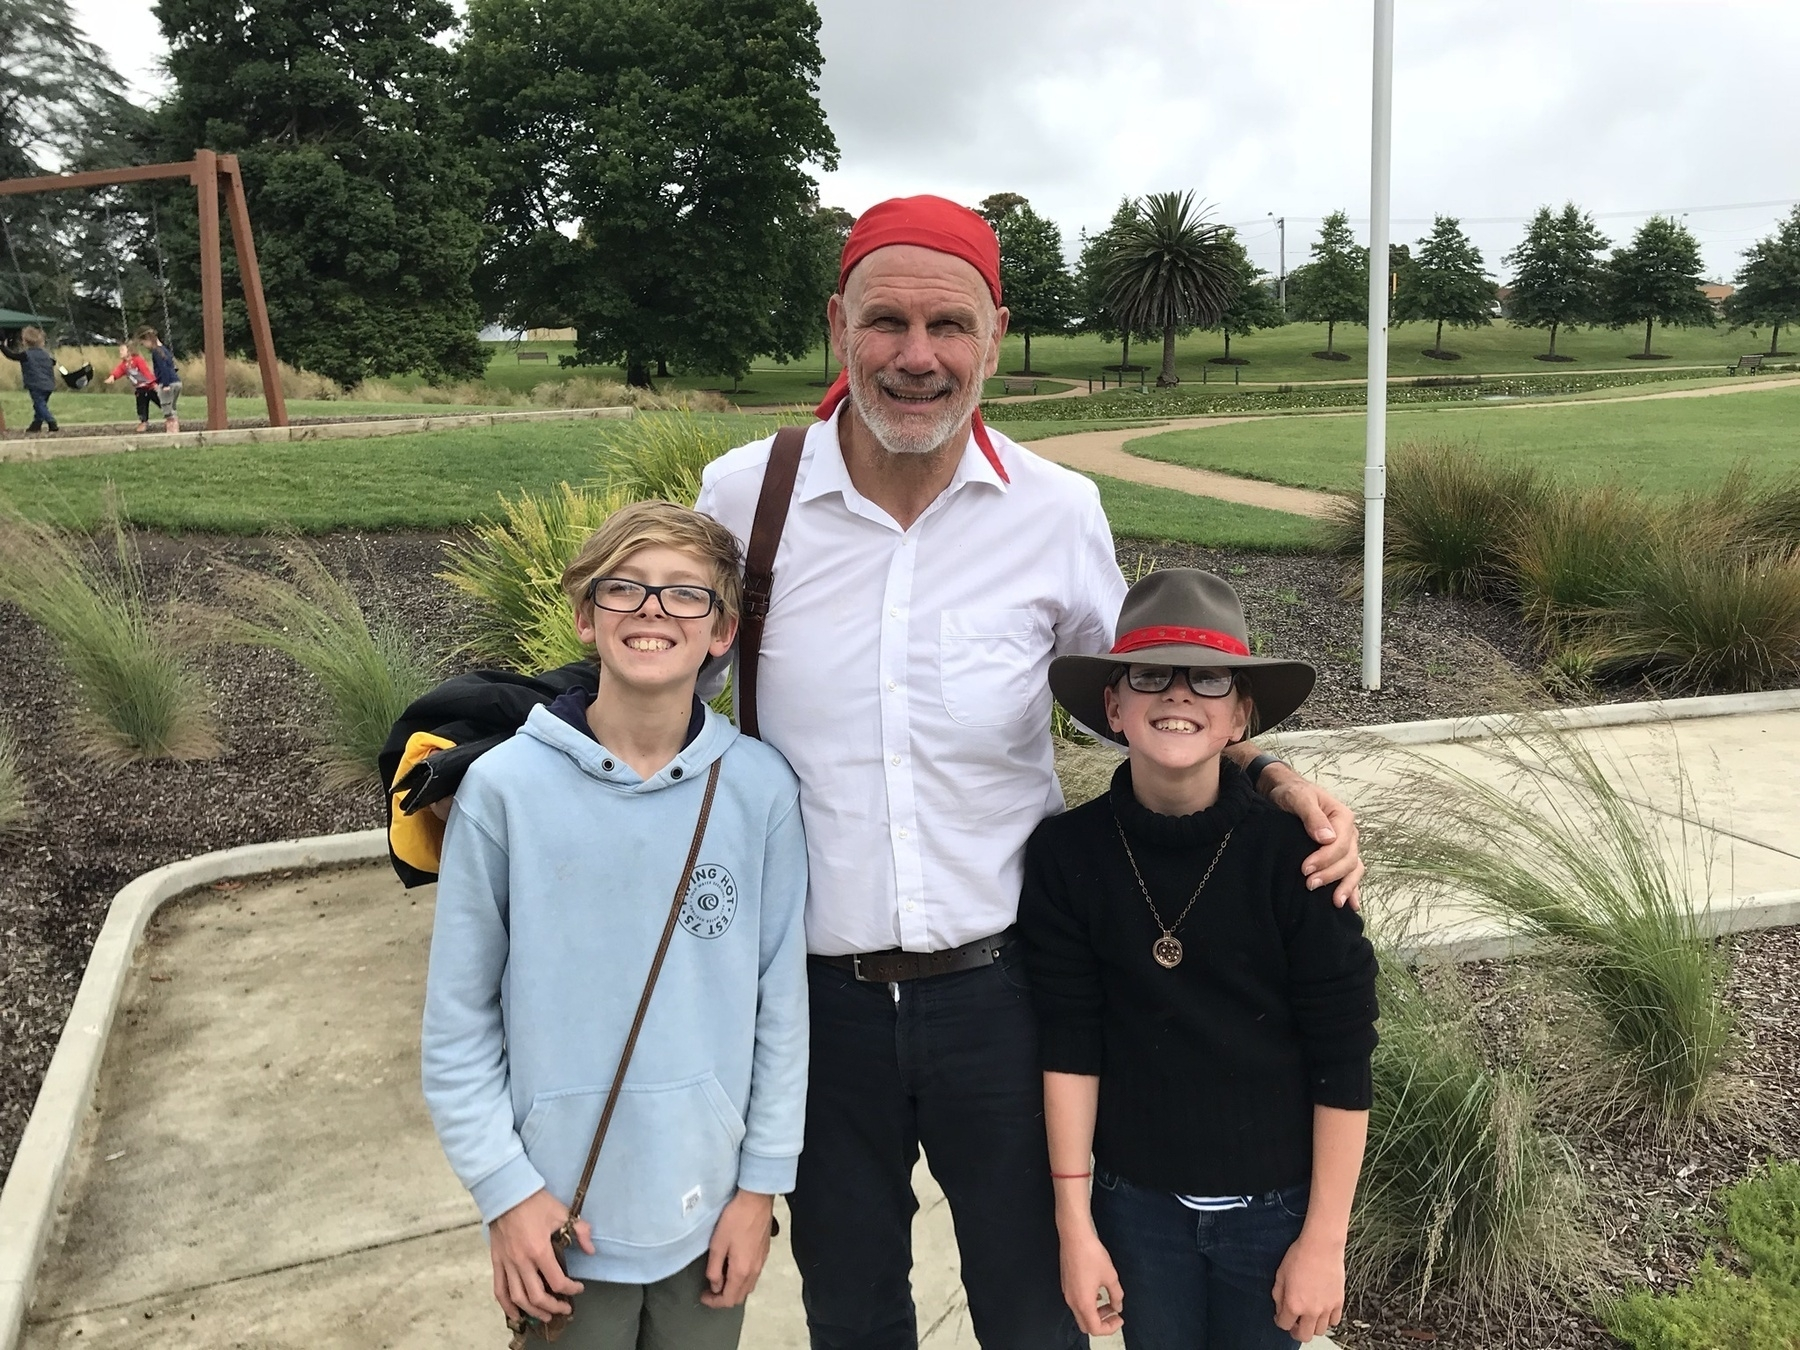 """The author Peter FitzSimons (centre) with my son Declan (left) and daughter Anneliese (right) outside the now-defunct """"Museum of Australian Democracy in Eureka (MADE)""""."""